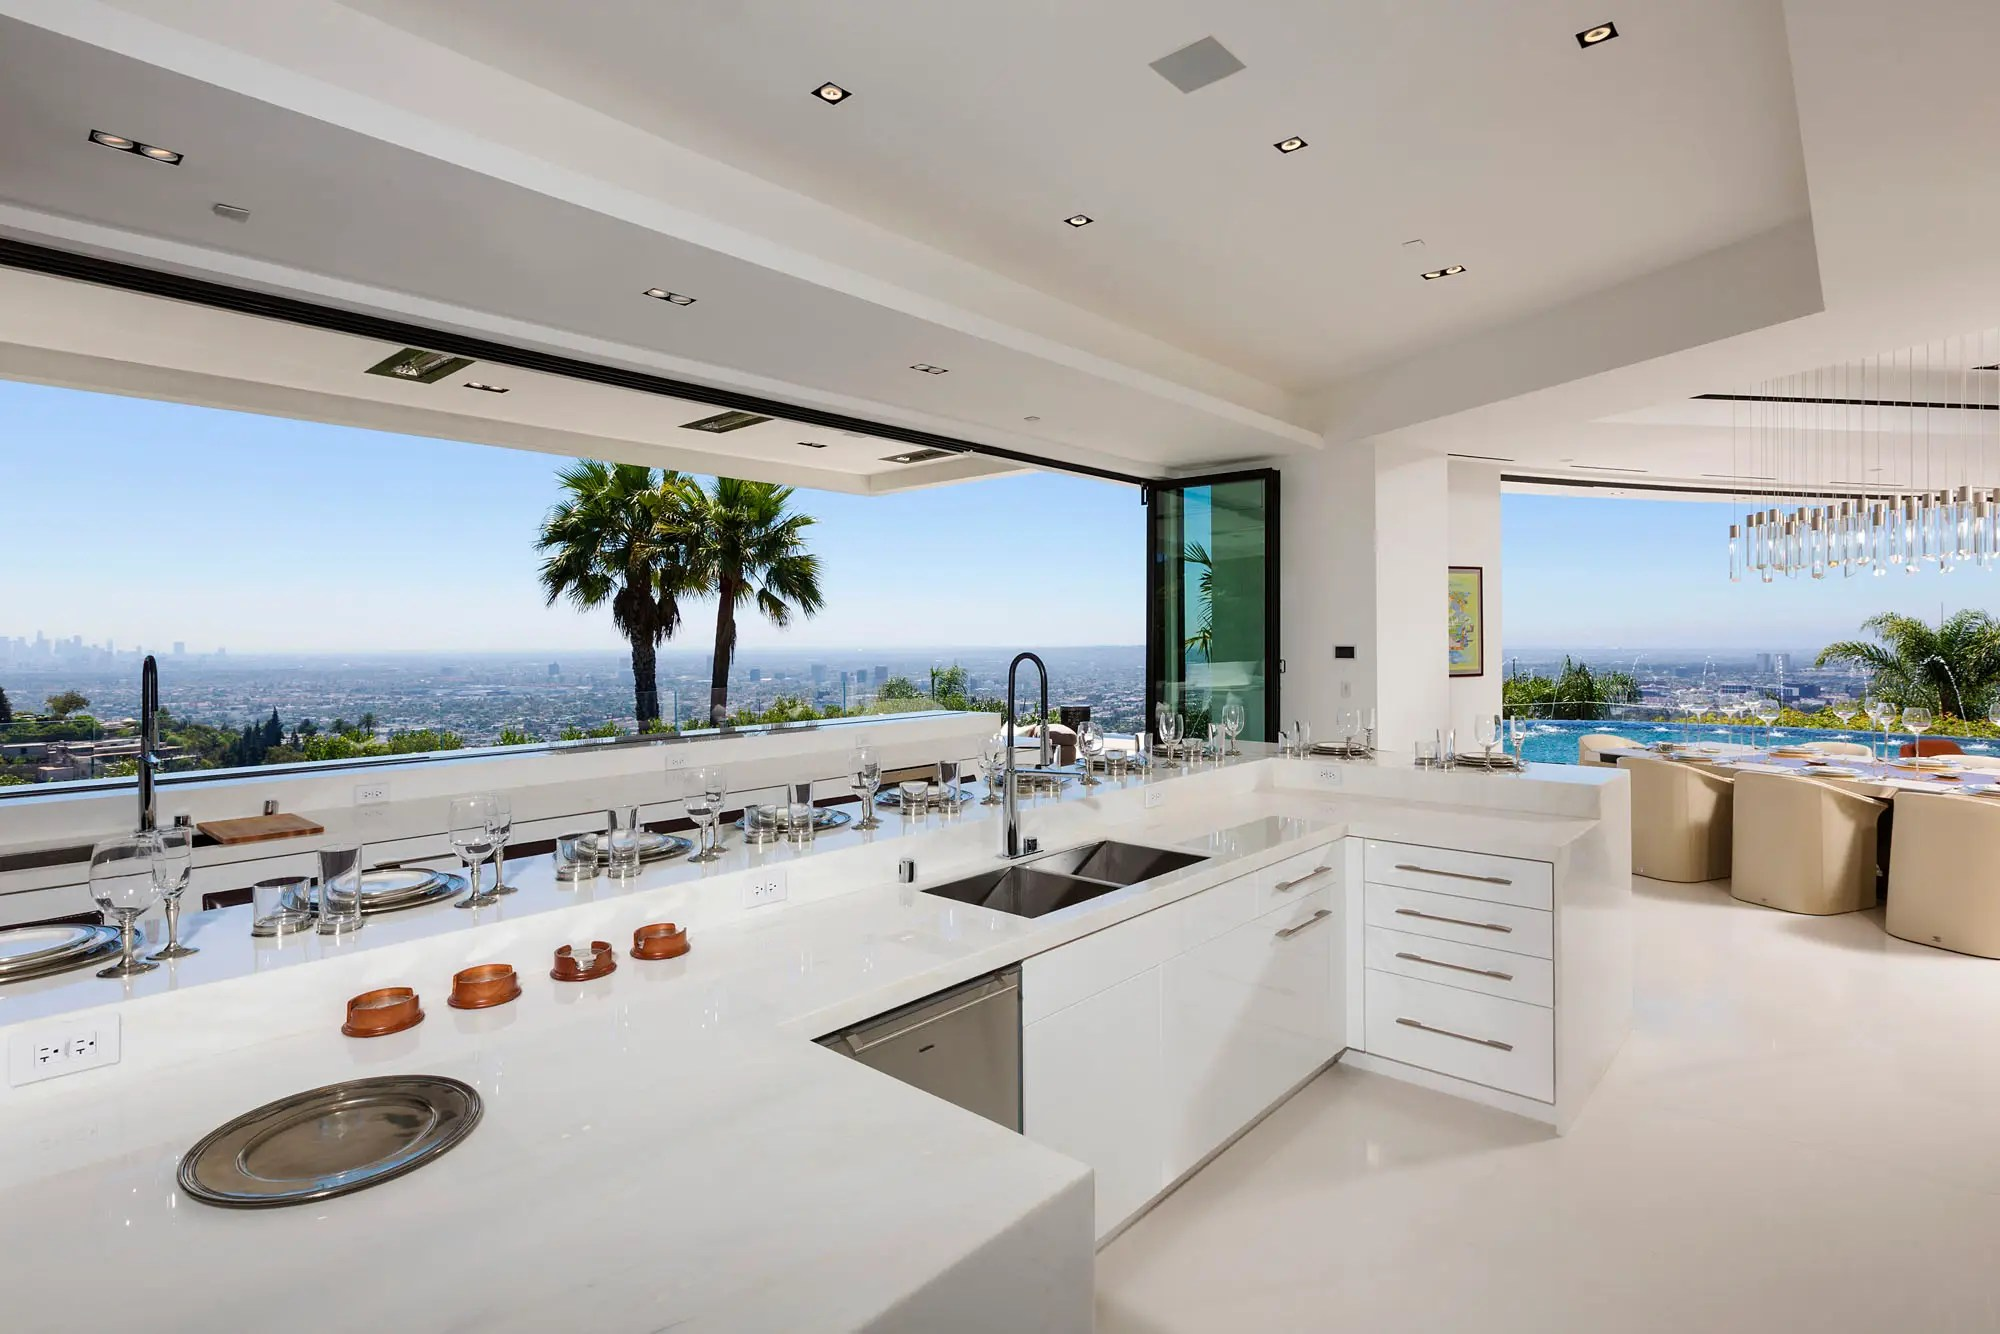 The open kitchen has 10 bar stools and a nearly 180-degree view of downtown LA.